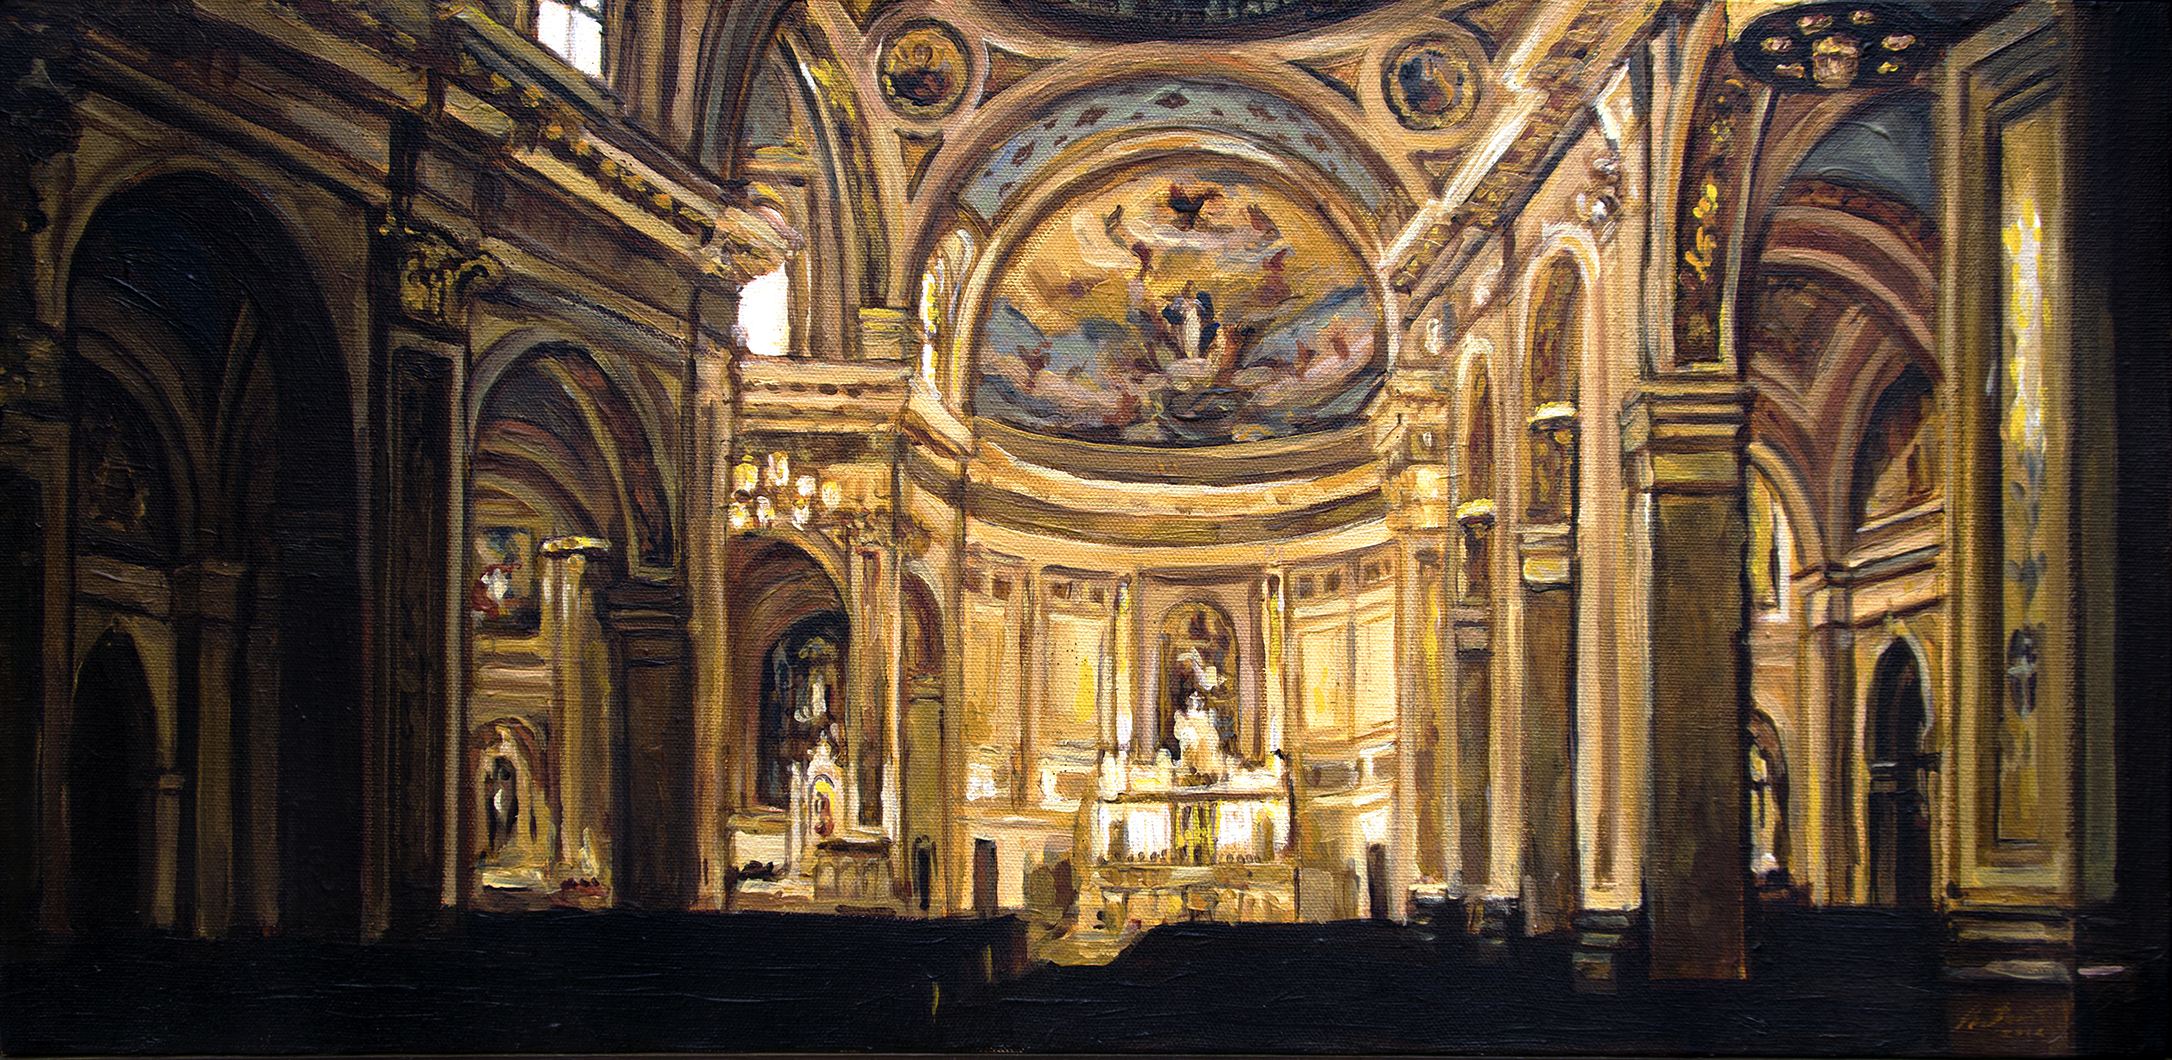 Church Interior (St. Mary of the Angels)